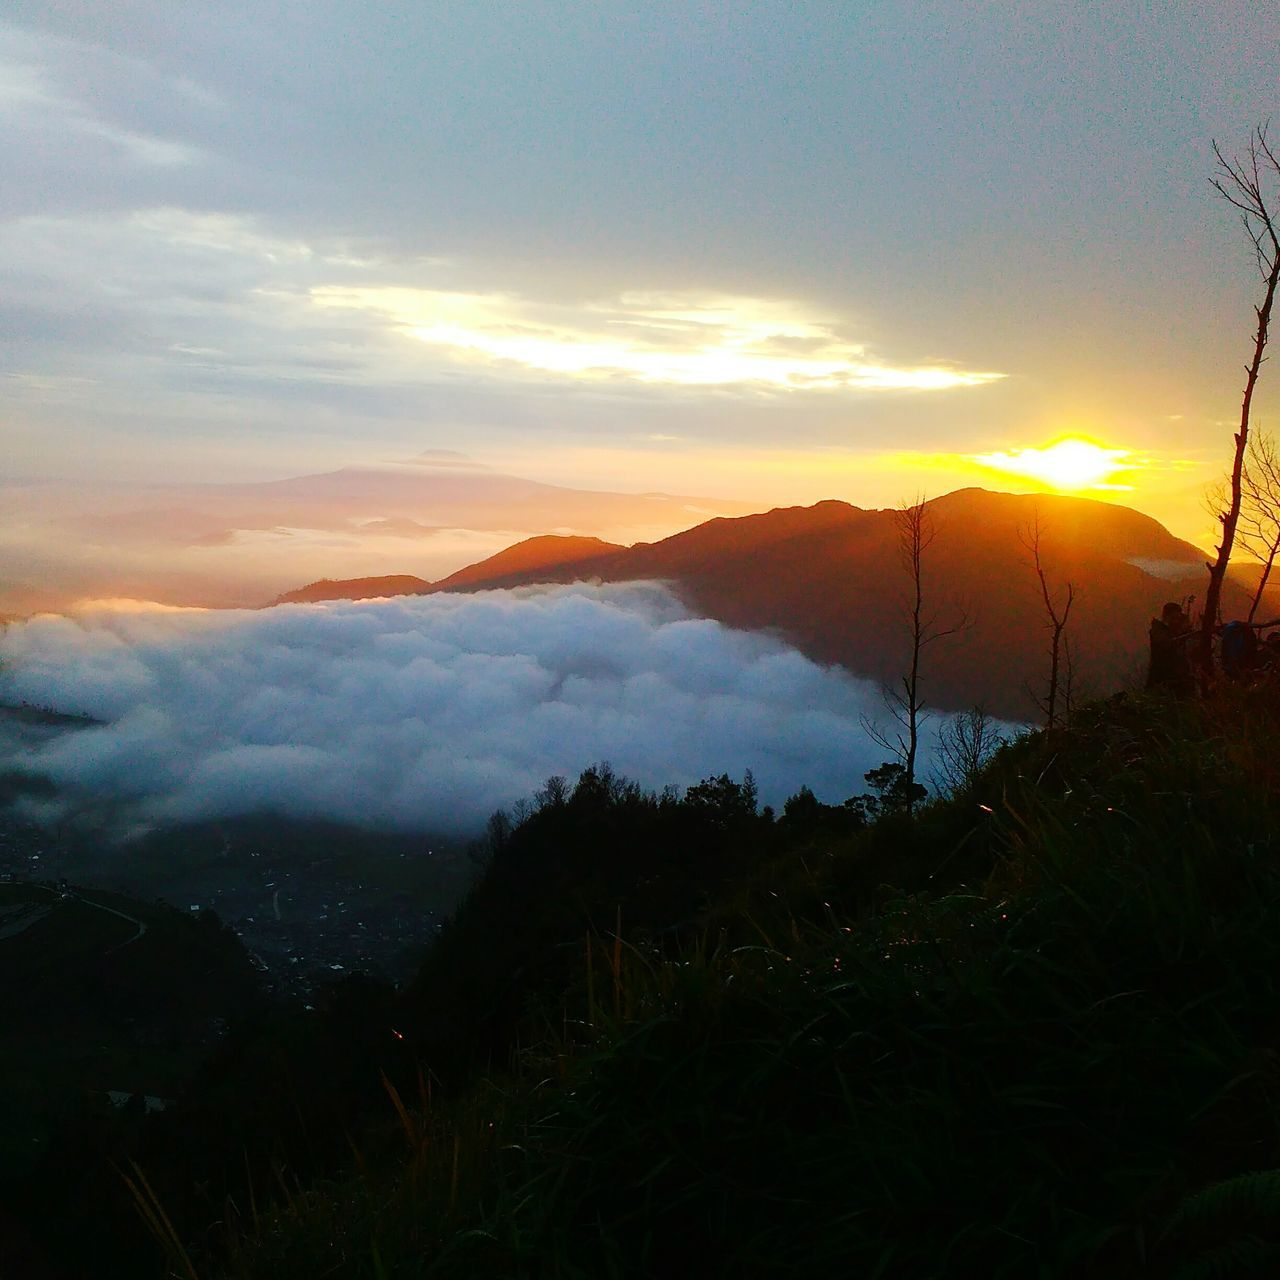 Sunrise And Clouds Mountain Beauty Beauty In Nature Yellow Nature Landscape Nature Photography Wonosobohitz Wonosoboasri INDONESIA First Eyeem Photo Cloud - Sky Indonesia Culture Travel Outdoors GoldenSunrise